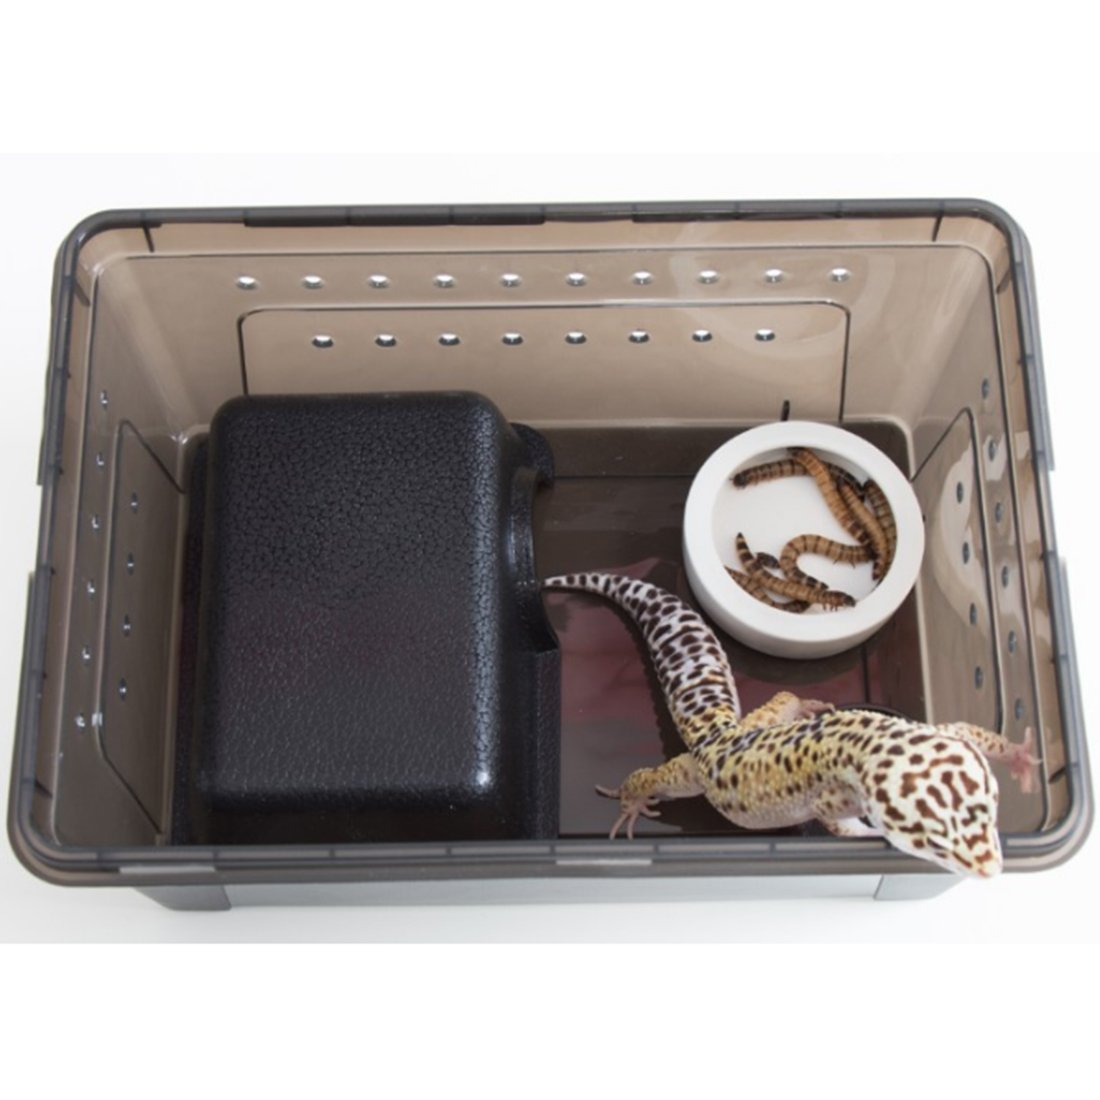 Fcoson Rectangle Feeding Box Transparent Reptile Cage Hatching Container for Spider Lizard Frog Cricket Turtle Crab Snack Black by Fcoson (Image #2)